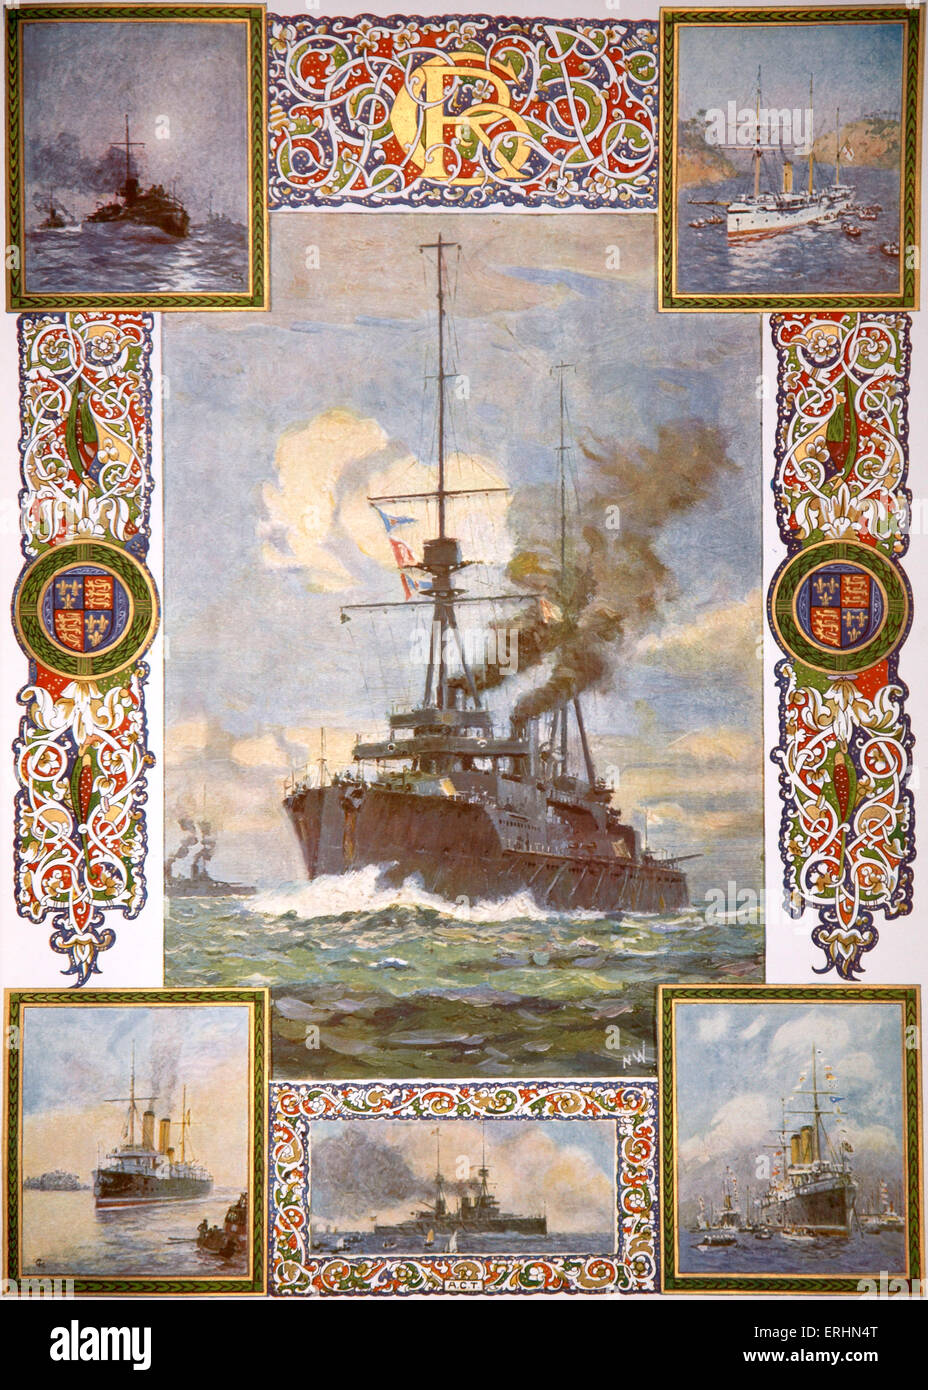 British battleships and boats in 1910 that had been under the command of King George V. Paintings by Norman Wilkinson - Stock Image